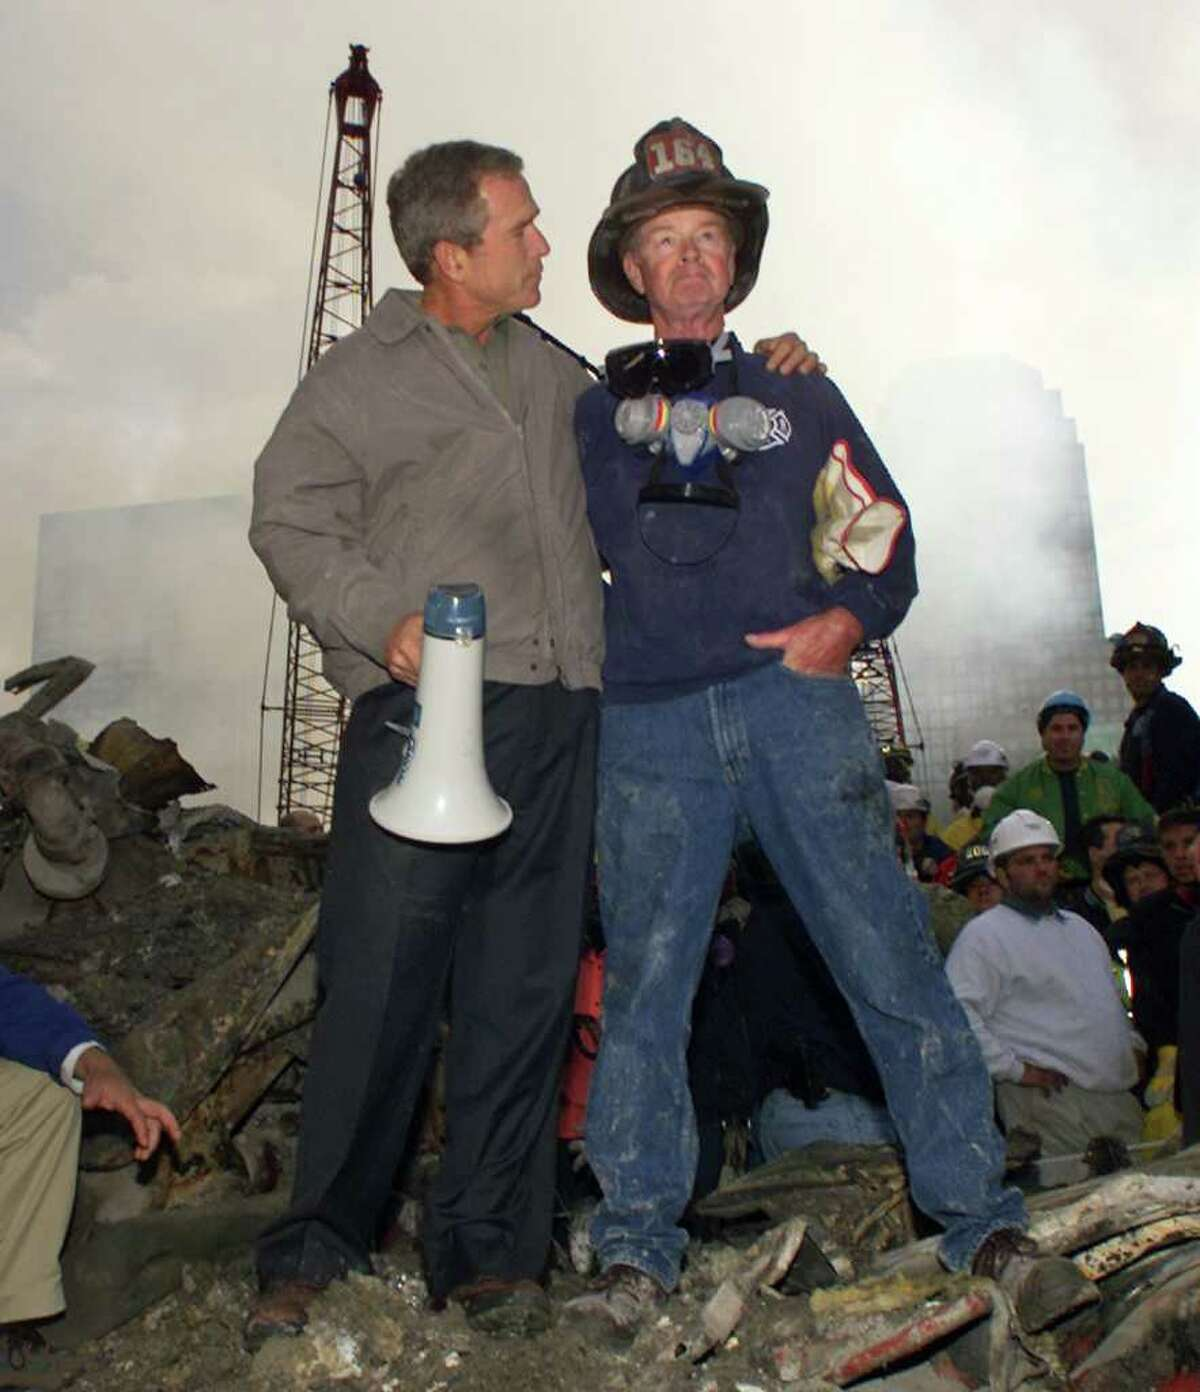 Bob Beckwith Retired firefighter Bob Beckwith found himself thrust into the spotlight after being captured in an iconic photo with President Bush. Though he was nearly 70 years old at the time of the attacks, Beckwith was spurred to action. Dressed in old FDNY gear, he managed to gain access to the WTC wreckage and help with rescue efforts.